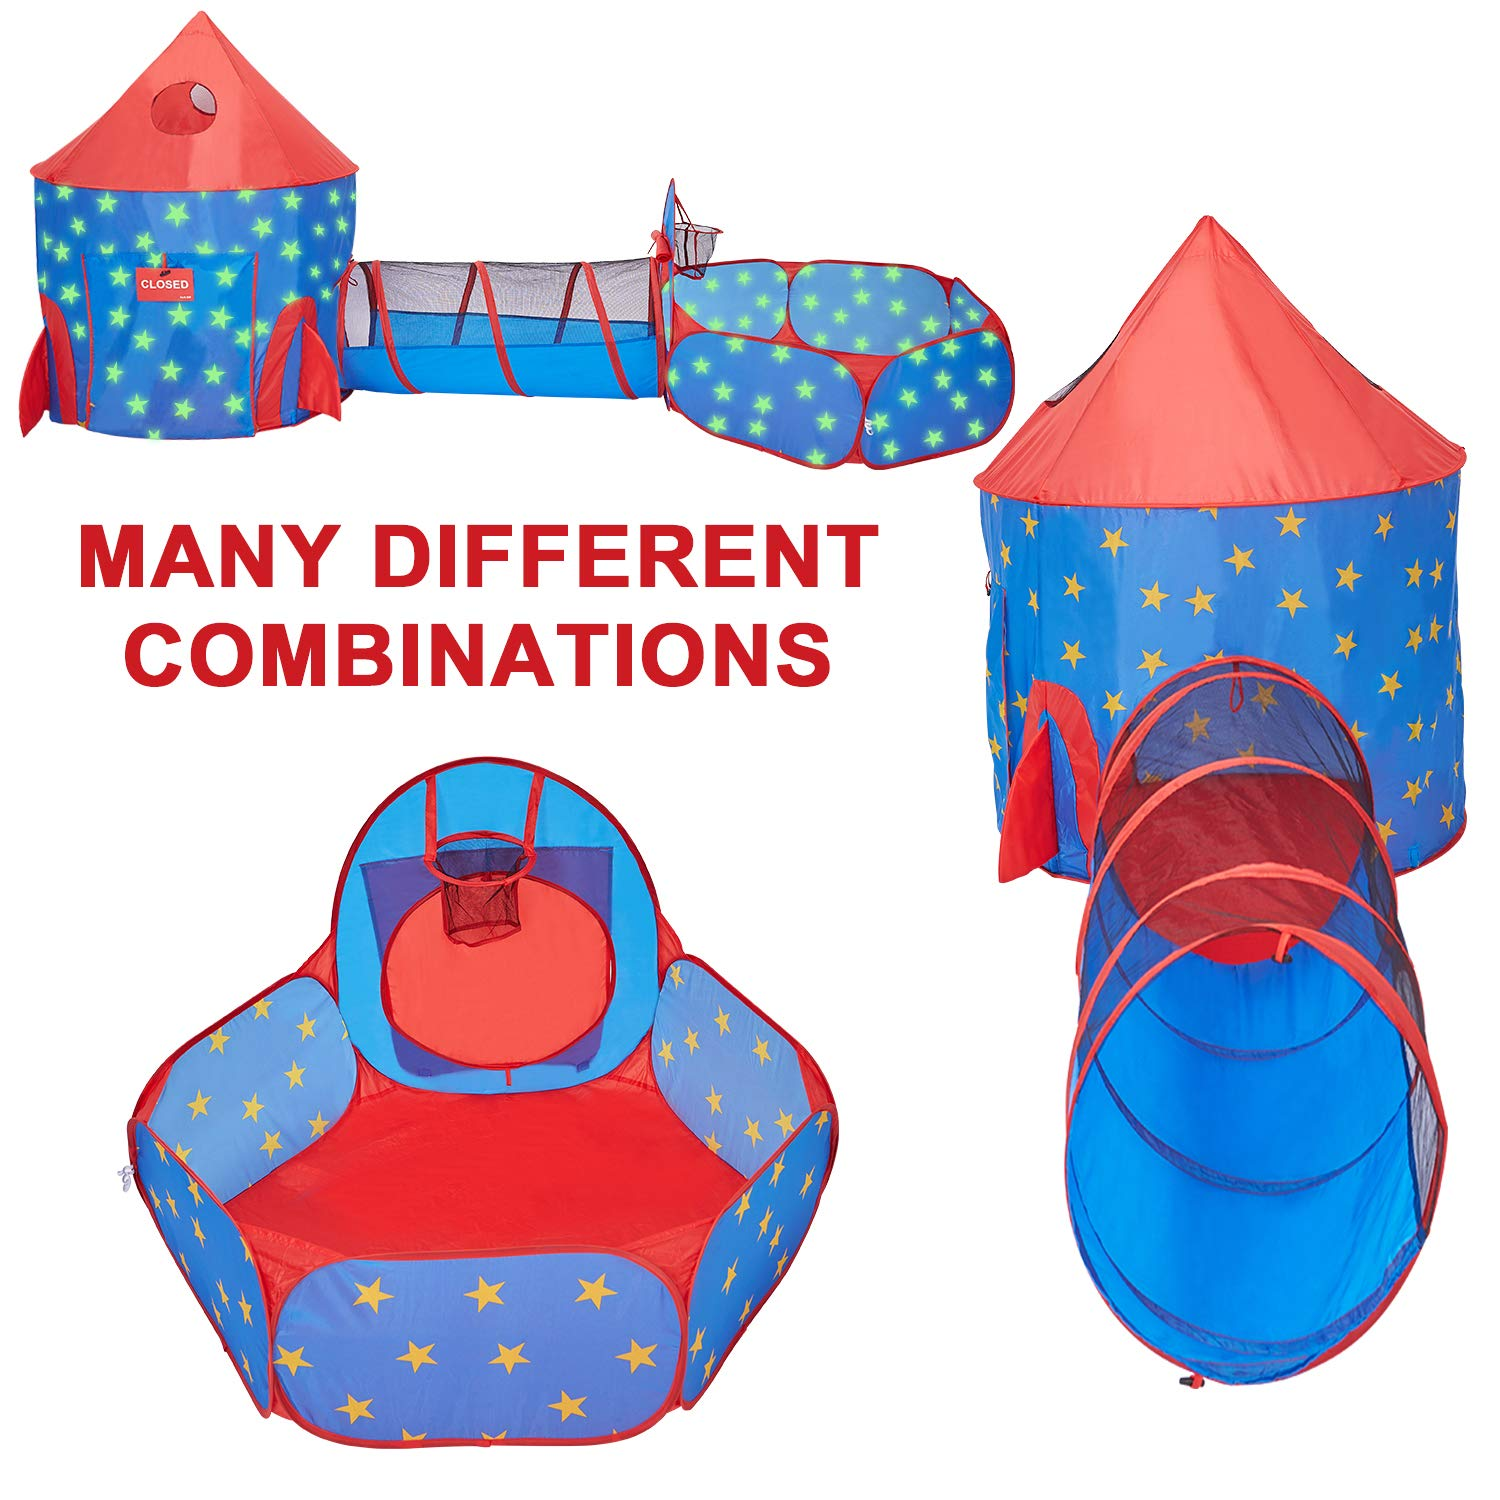 HAN-MM 3pc Play Tent Ball Pit with Tunnel Stars Glow in The Dark, Tunnel & Ball Pit Basketball Rocket Ship Astronaut Hoop Toys with Bonus Message Signs for Indoor Outdoor Camping by HAN-MM (Image #2)